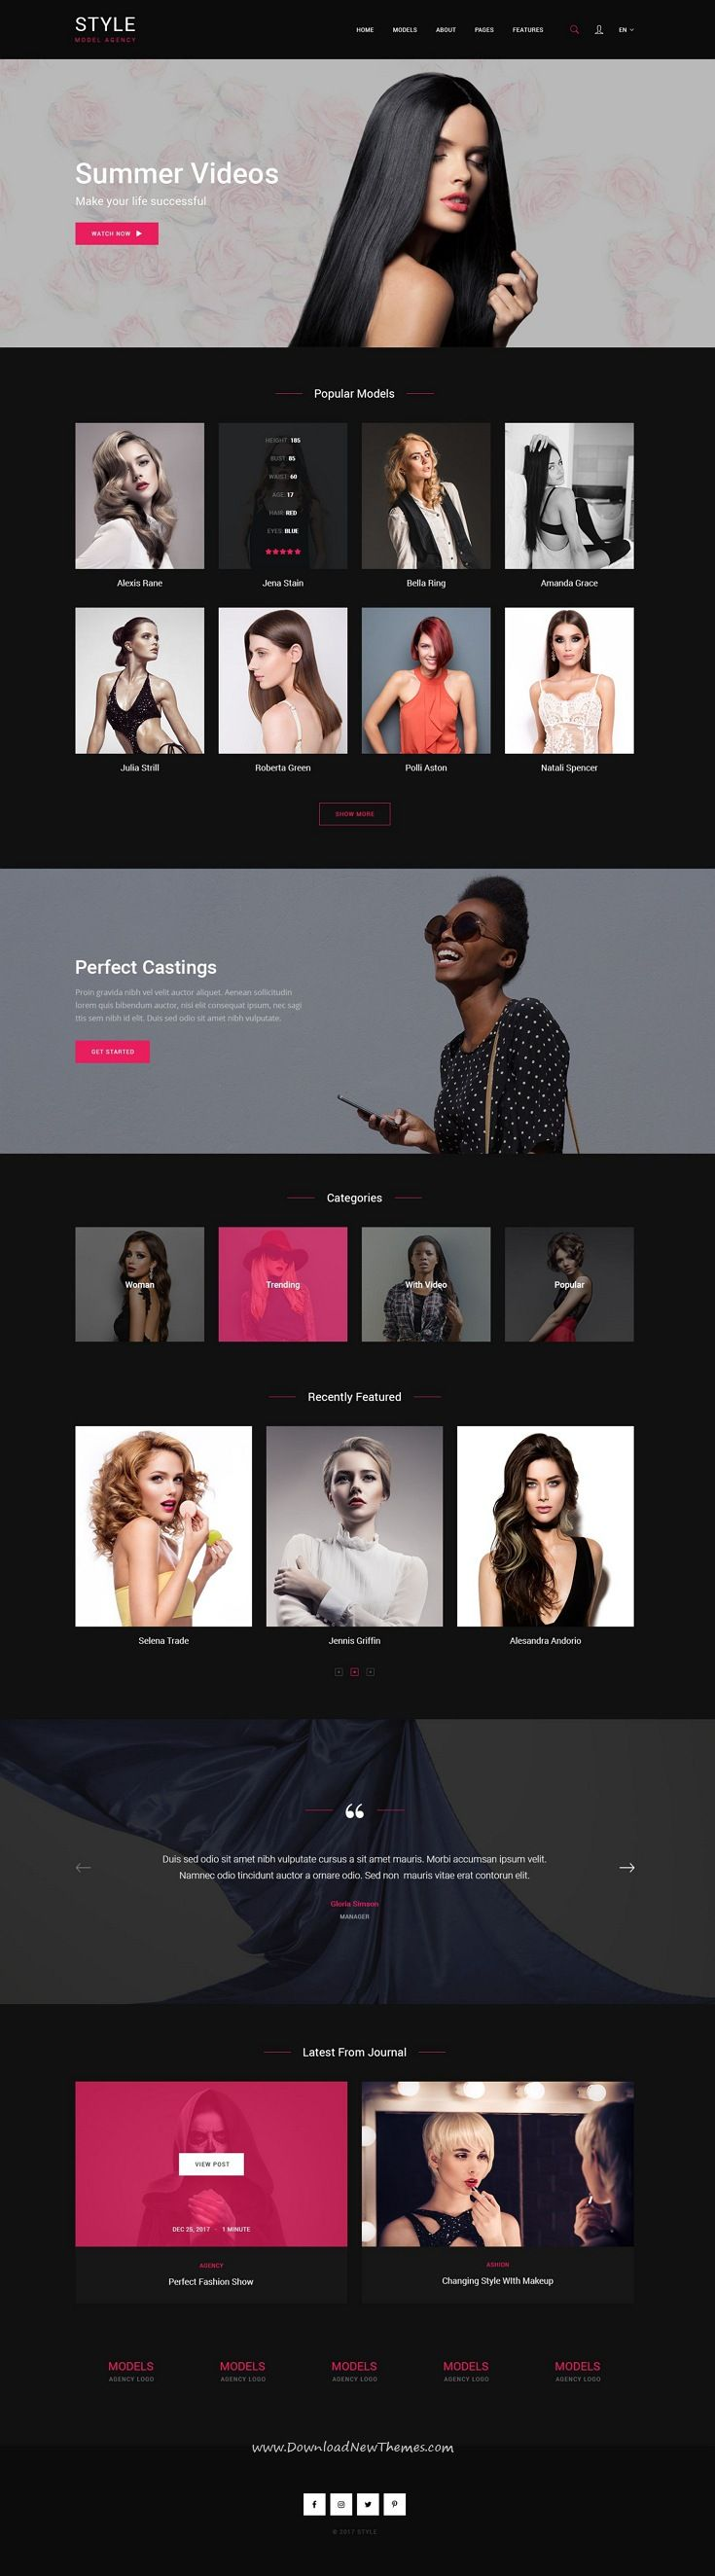 Style is clean and modern design PSD